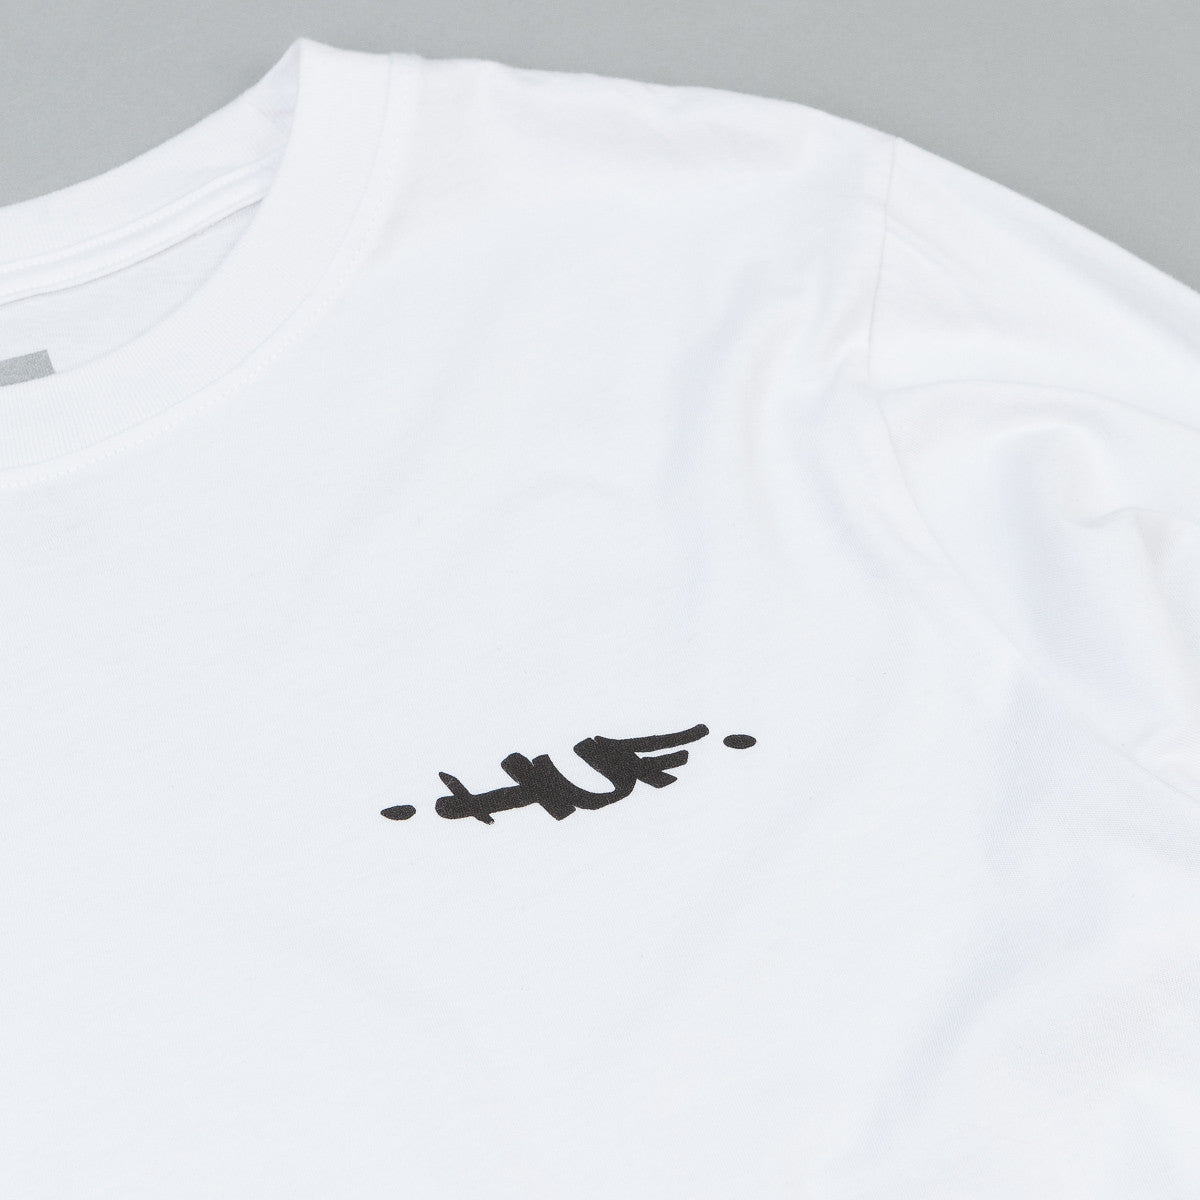 HUF X Slap Butterfly Long Sleeve T-Shirt - White